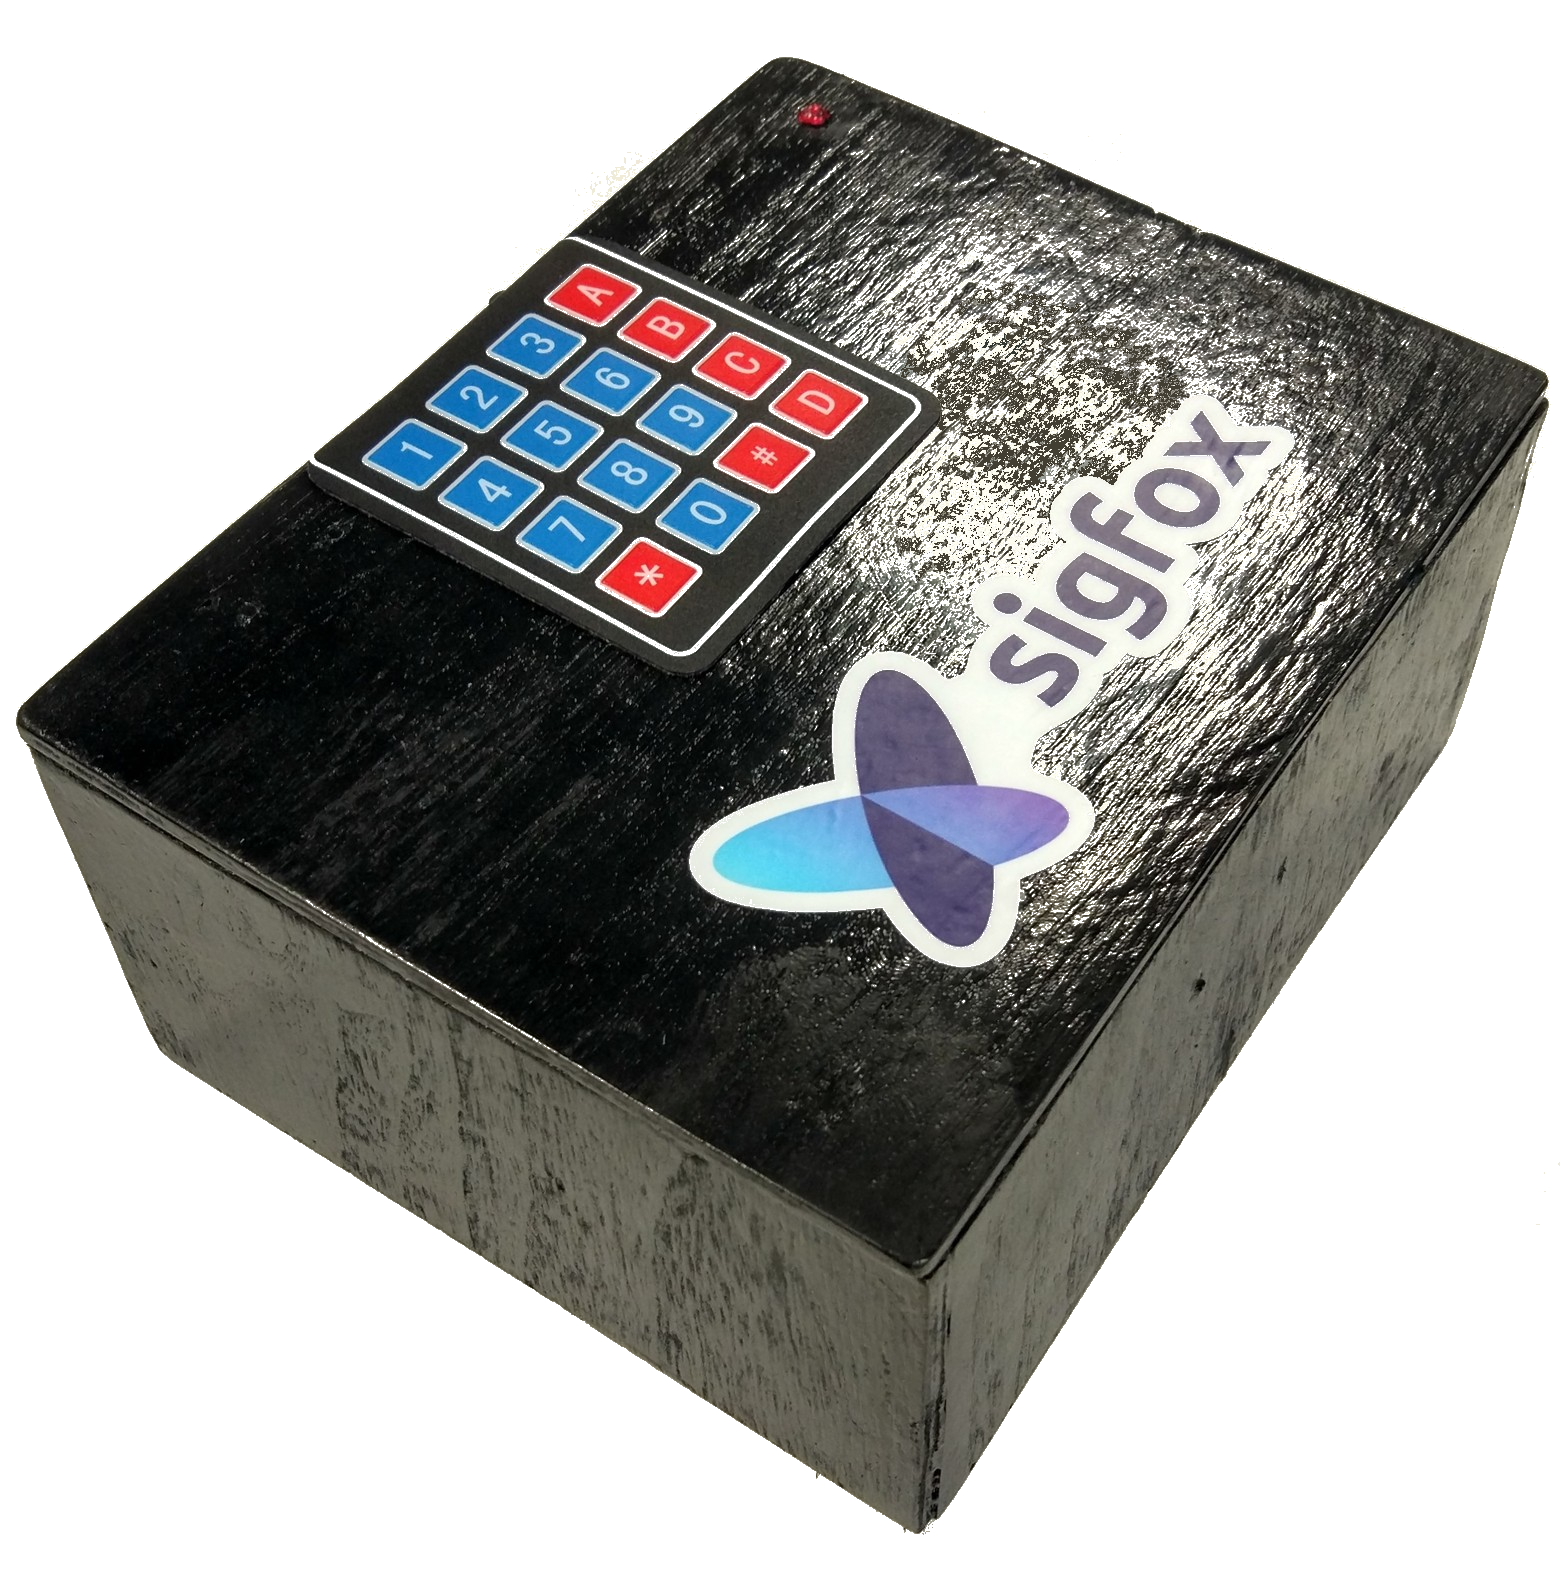 Picture of [Airbnb] Sigfox Lock Box